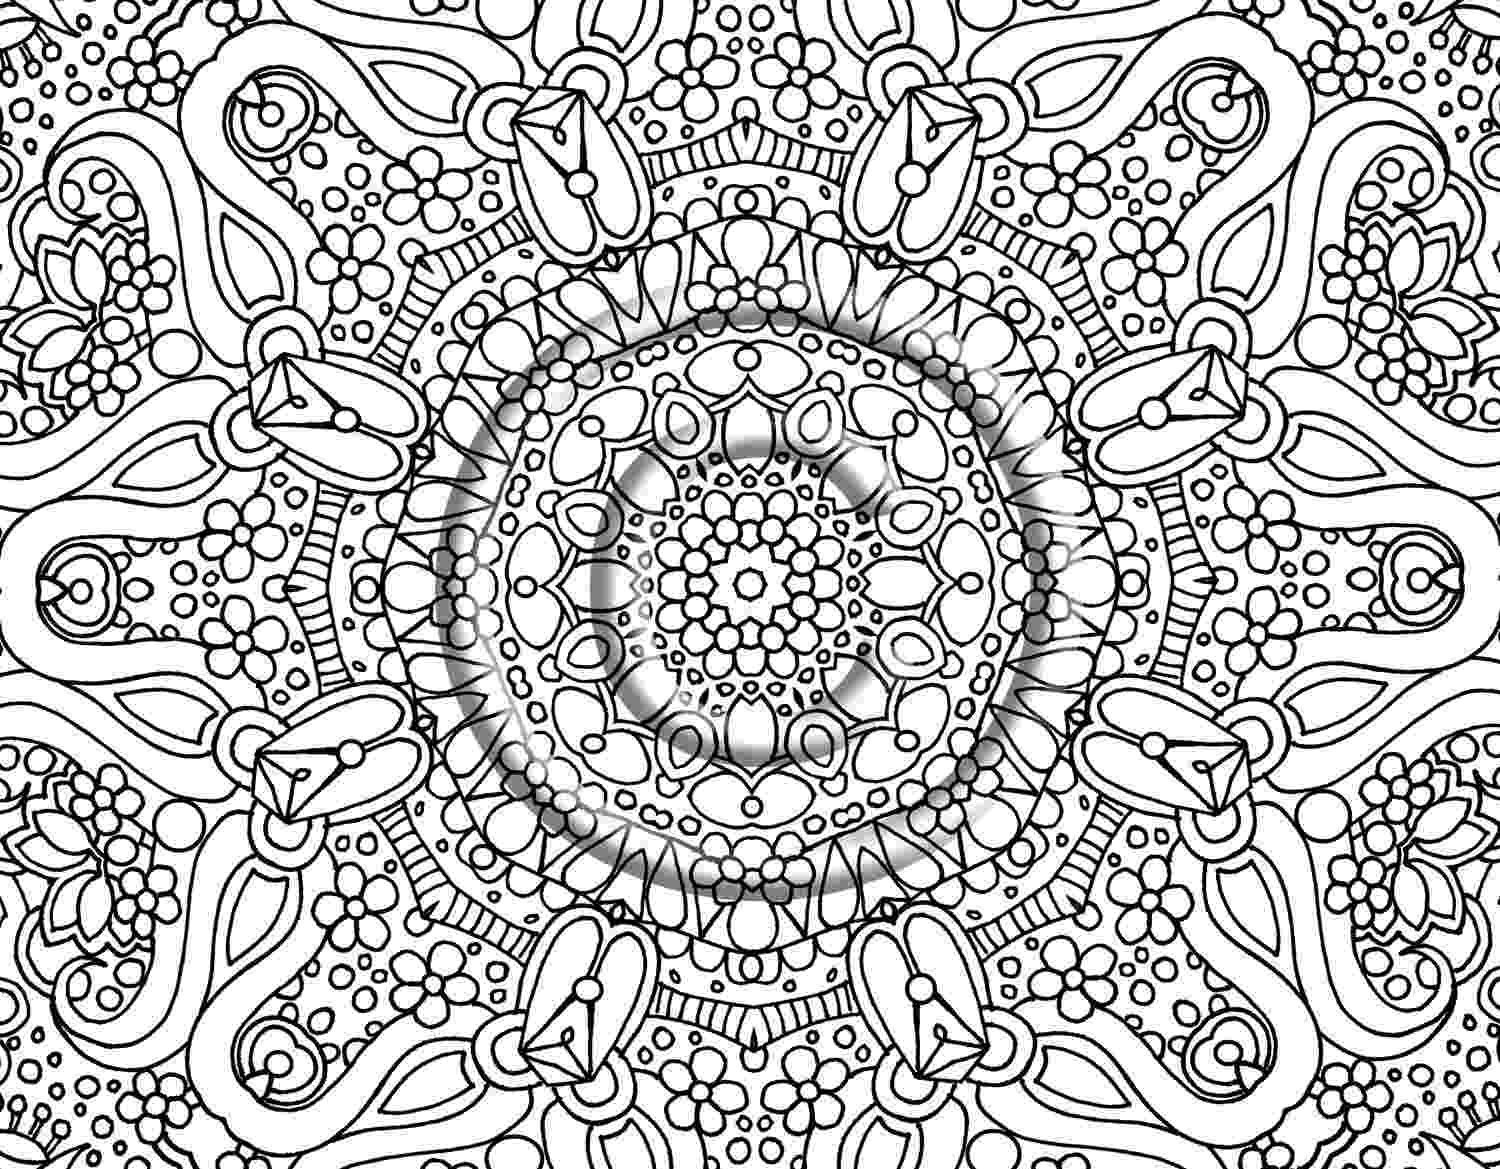 detailed flower coloring pages detailed flower coloring pages to download and print for free flower detailed pages coloring